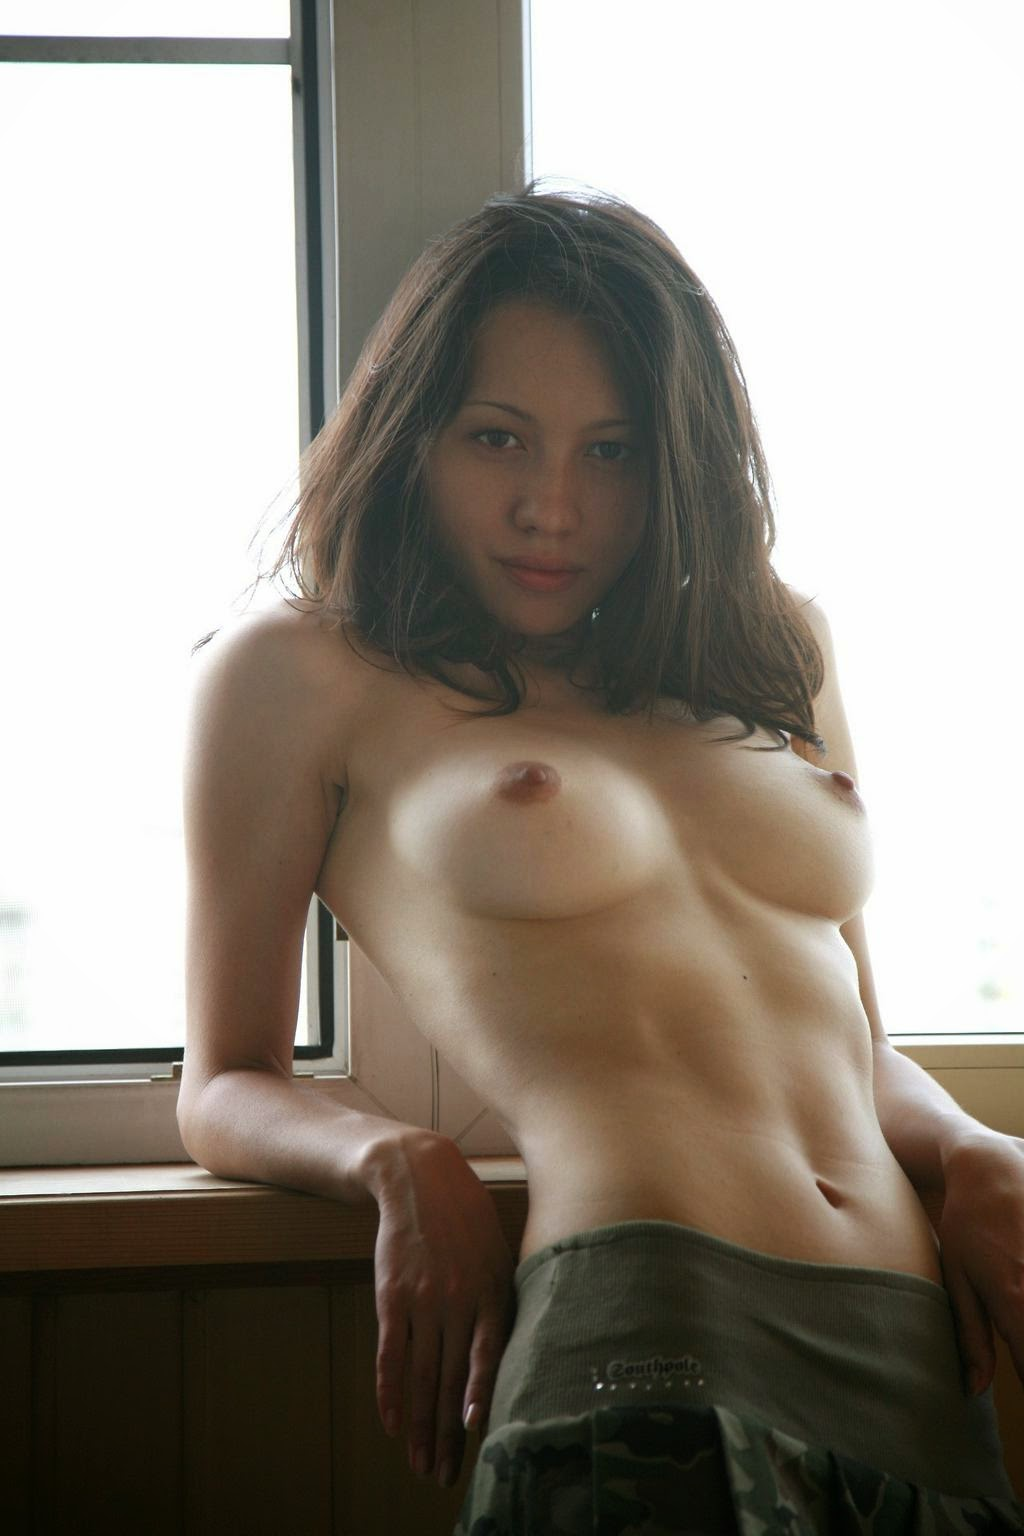 Congratulate, Korean big boobs pictures